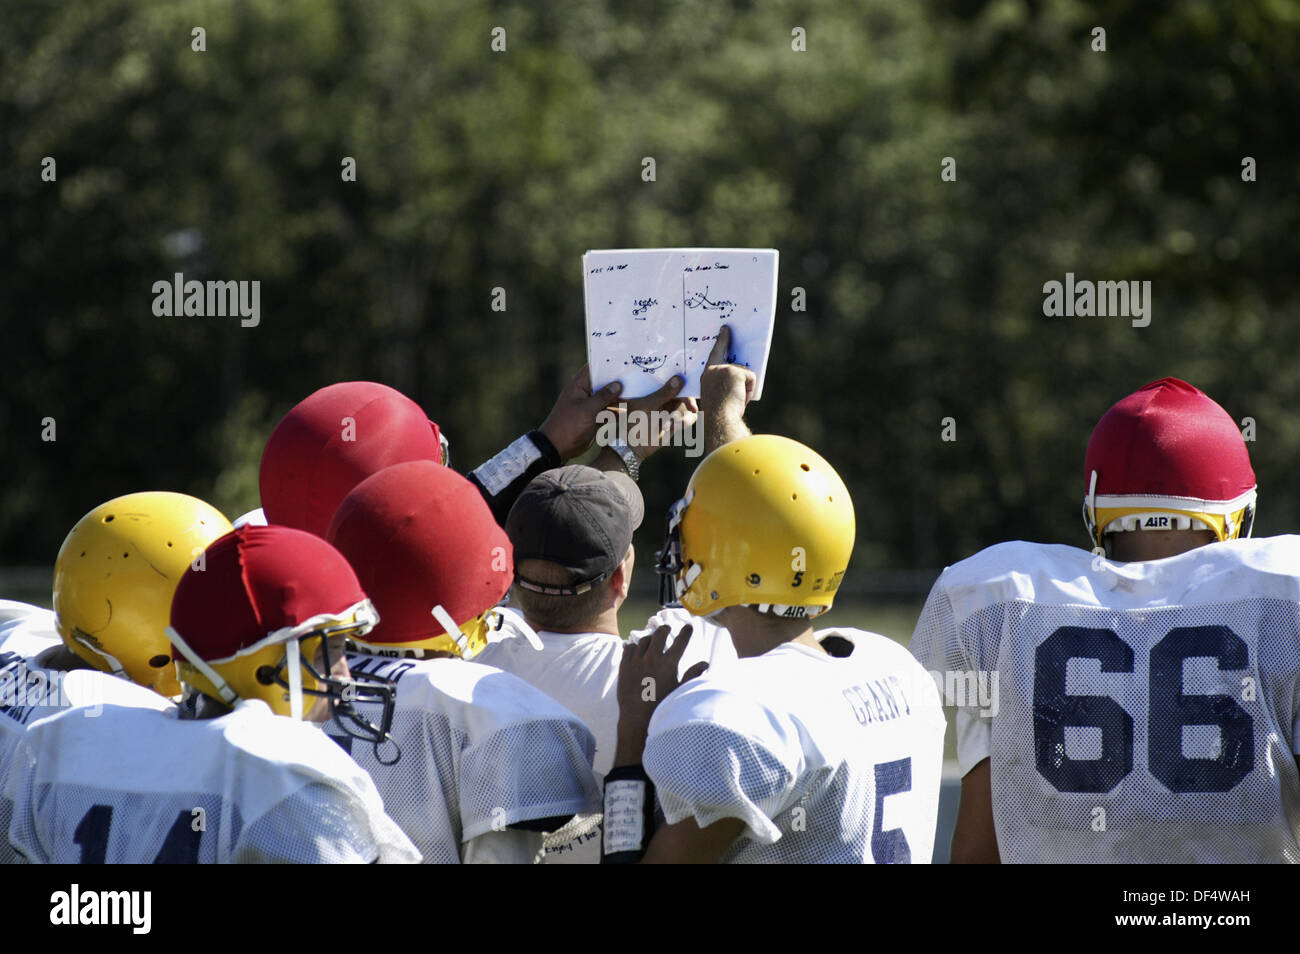 Football coach holds up play book for all players to see - Stock Image